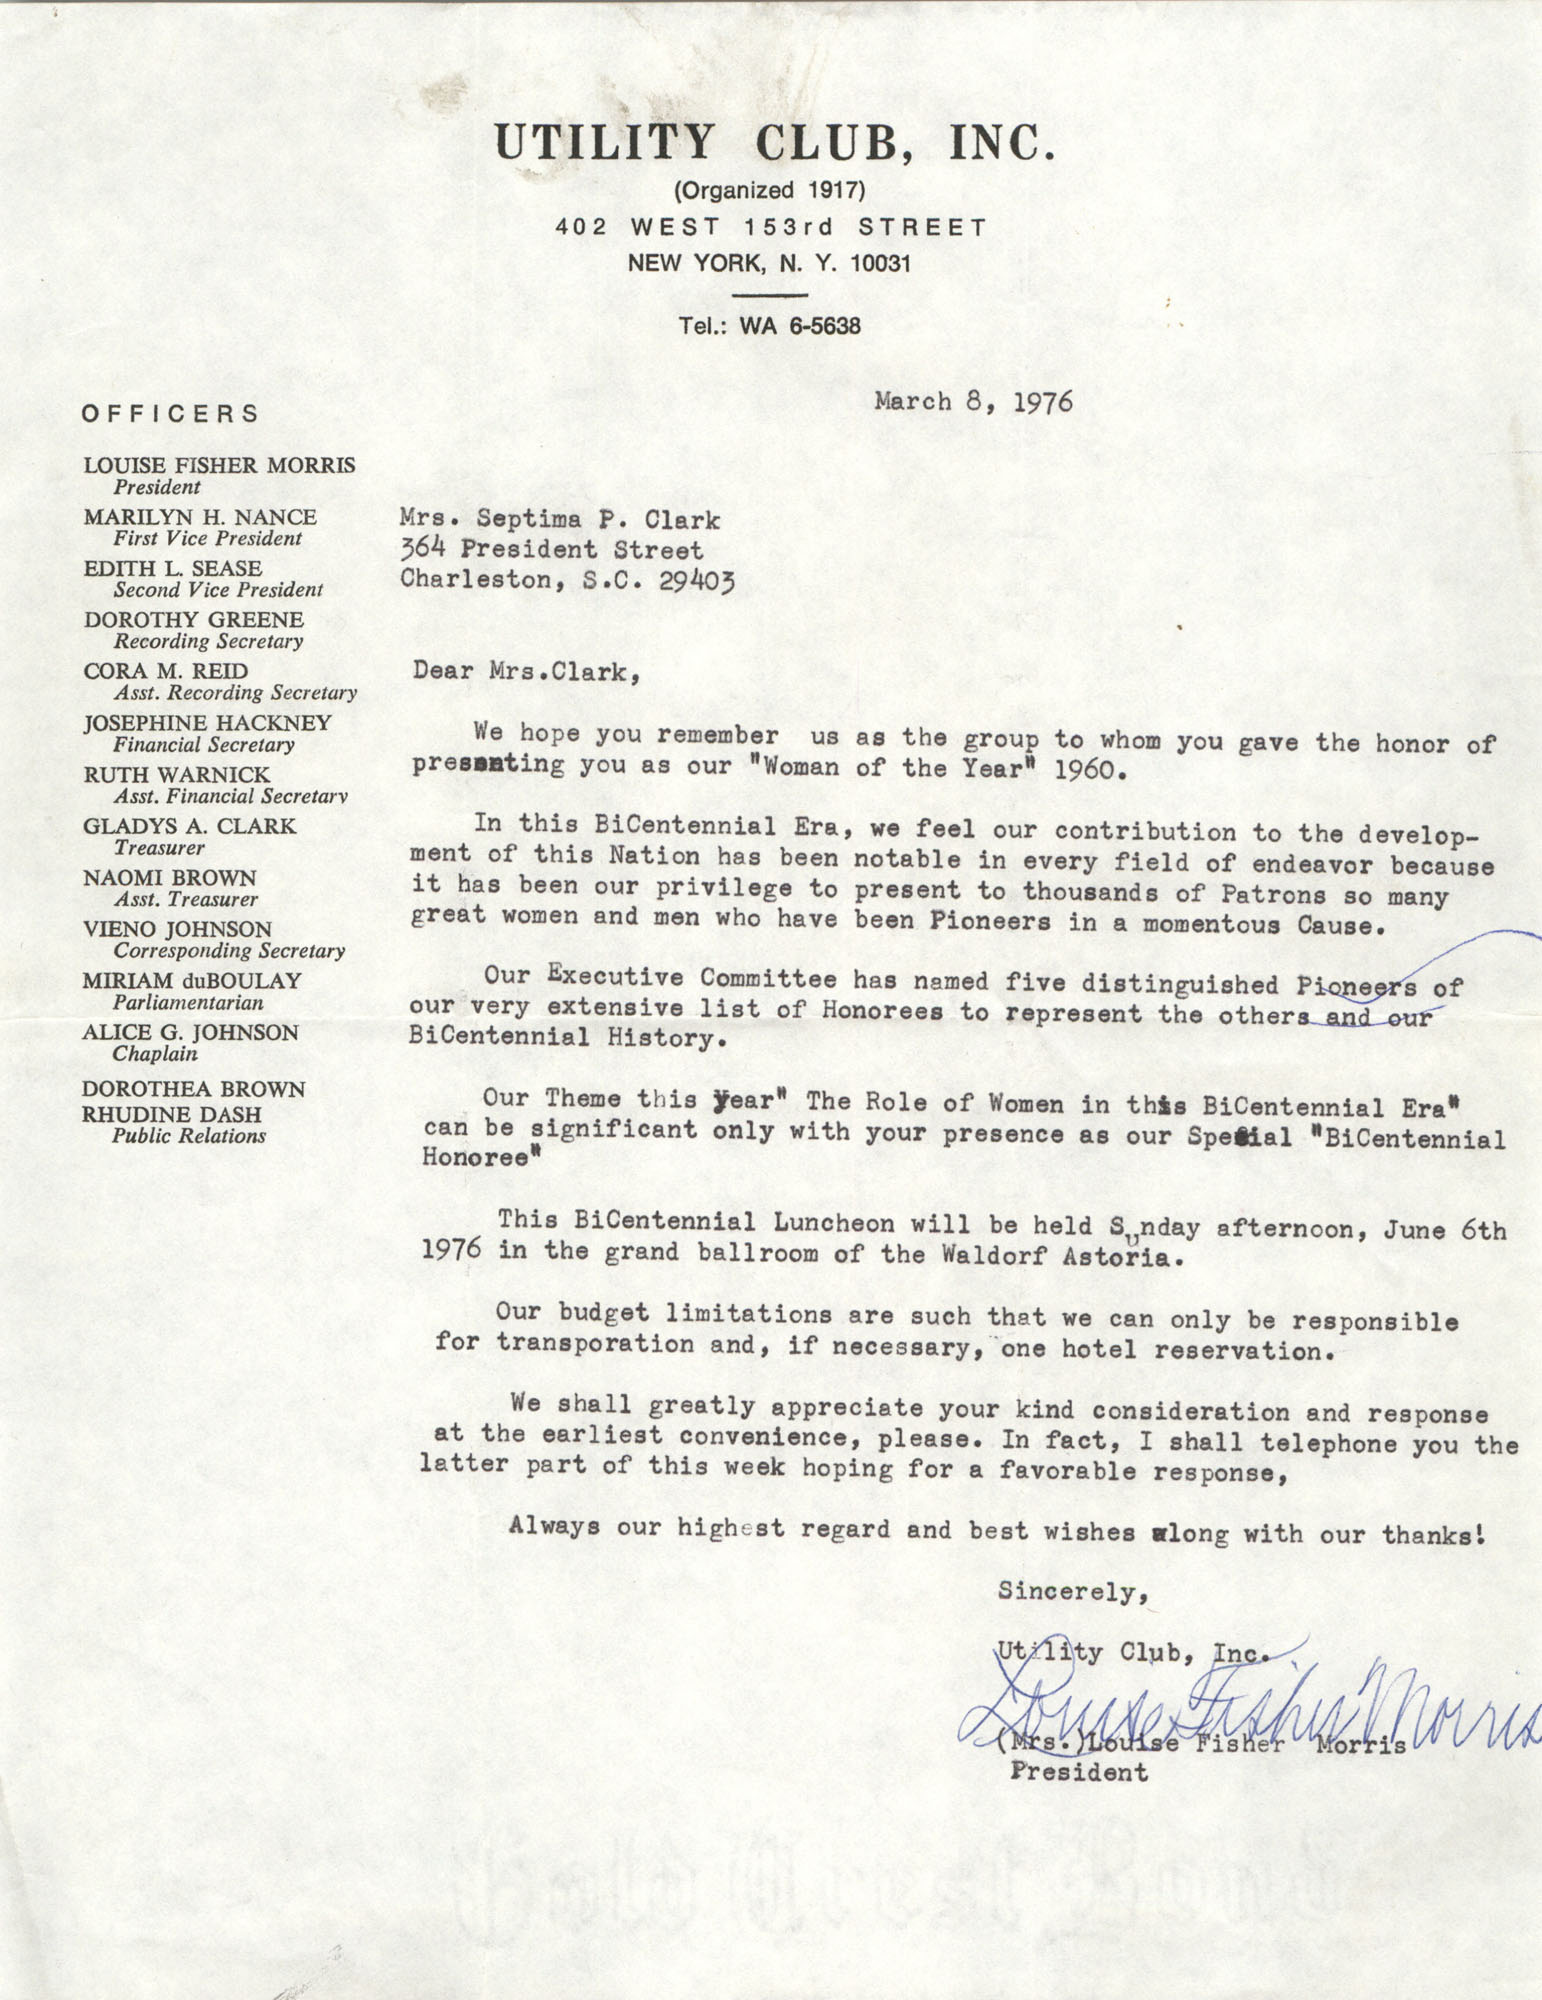 Letter from Utility Club, Inc. to Septima P. Clark, March 8, 1976